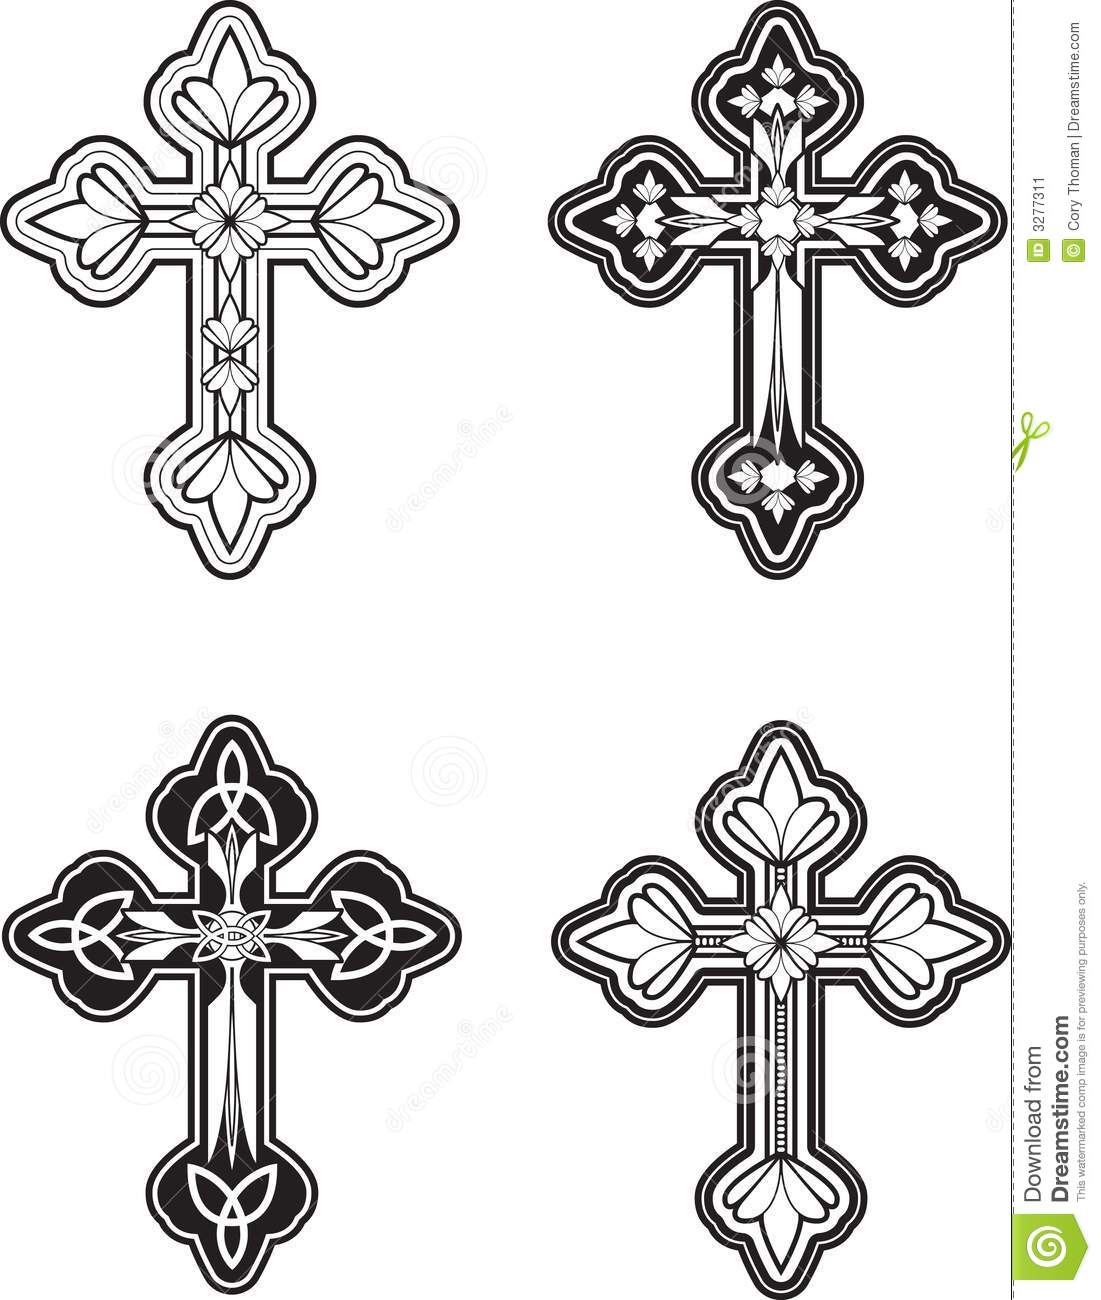 variety of black and white ornately engraved crosses.